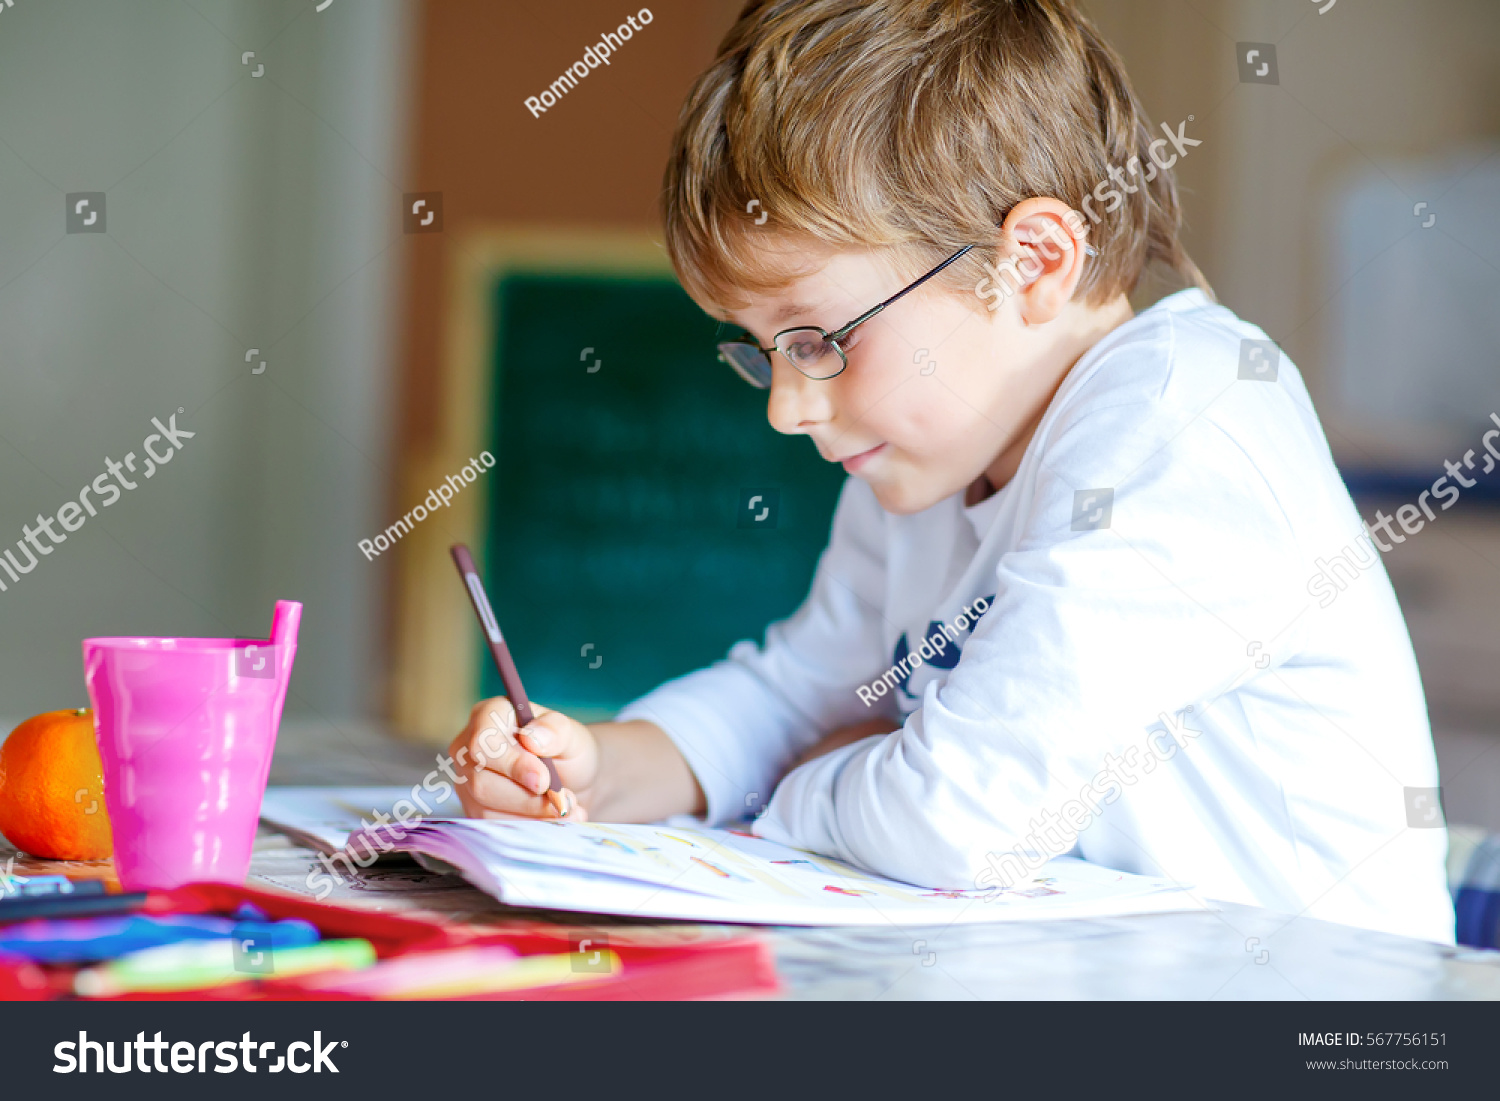 9024033b1a3 Portrait of cute happy school kid boy with glasses at home making homework. Little  child